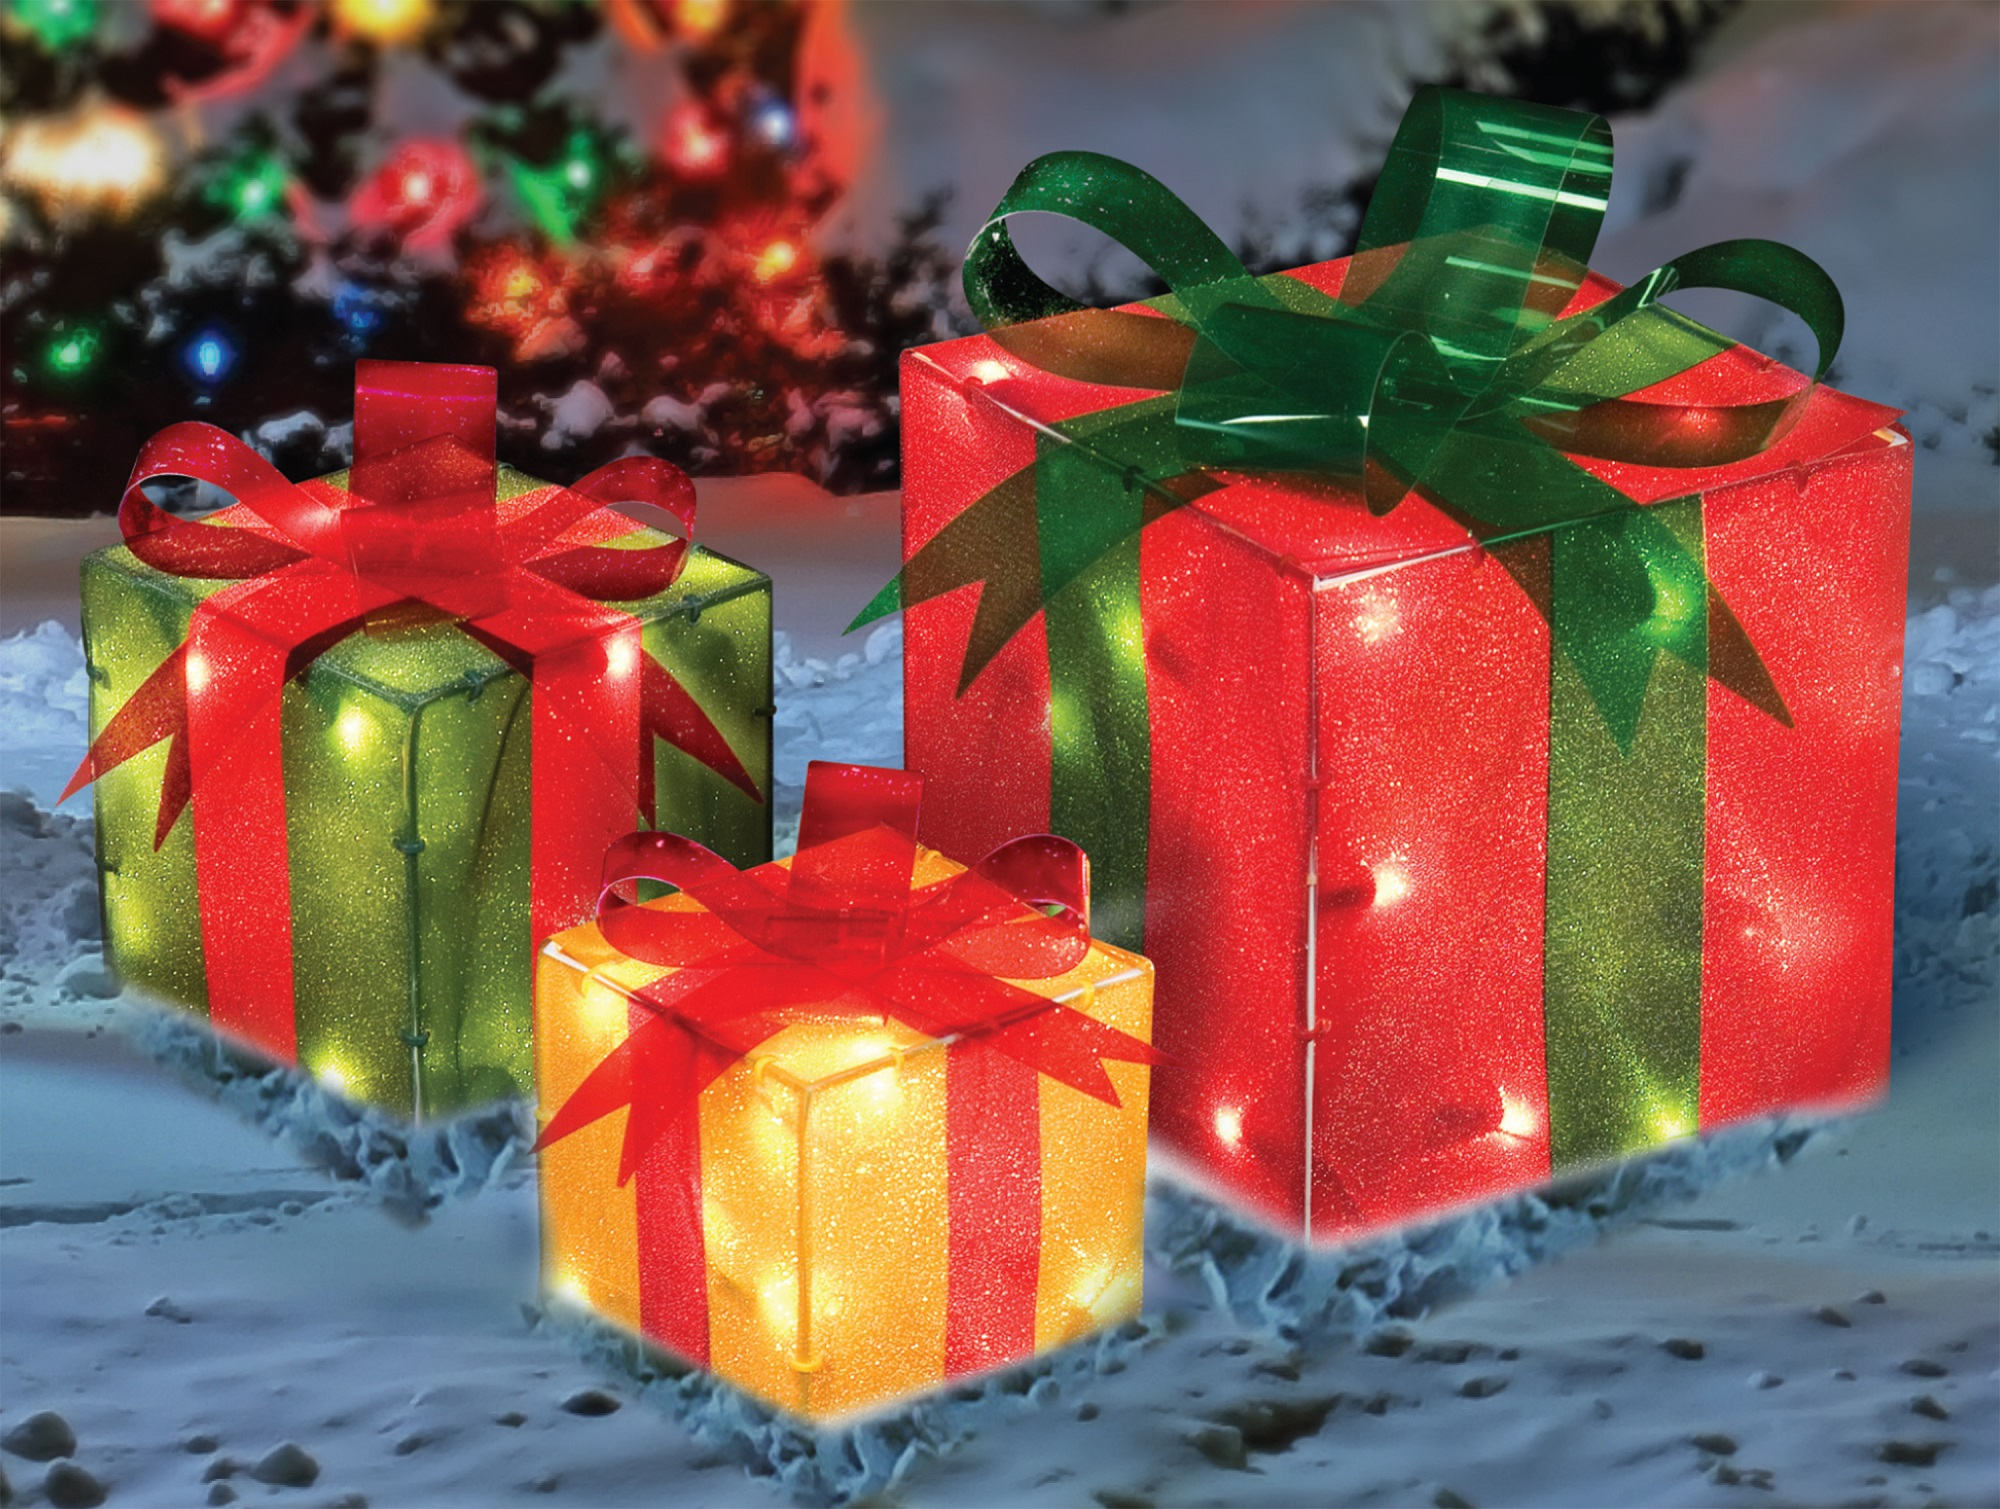 set of 3 red green and yellow glistening lighted gift box christmas outdoor decorations 9 - Lighted Christmas Gift Box Decorations